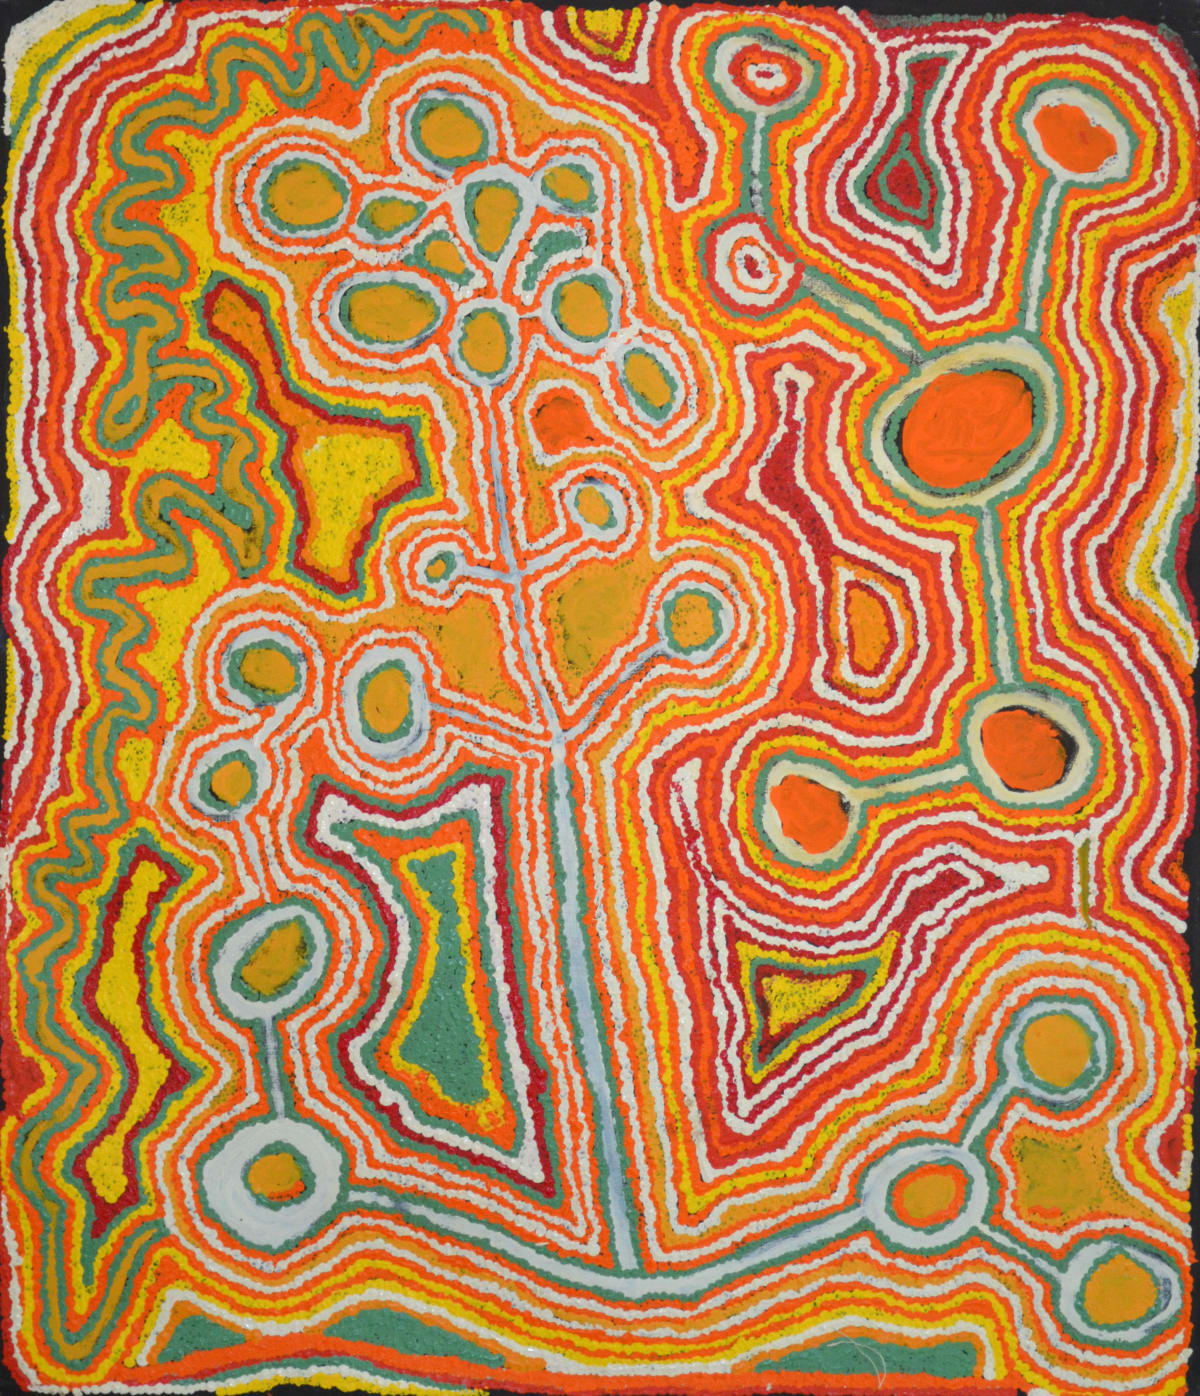 Jimmy Donegan Pukara acrylic on linen 107 x 91 cm